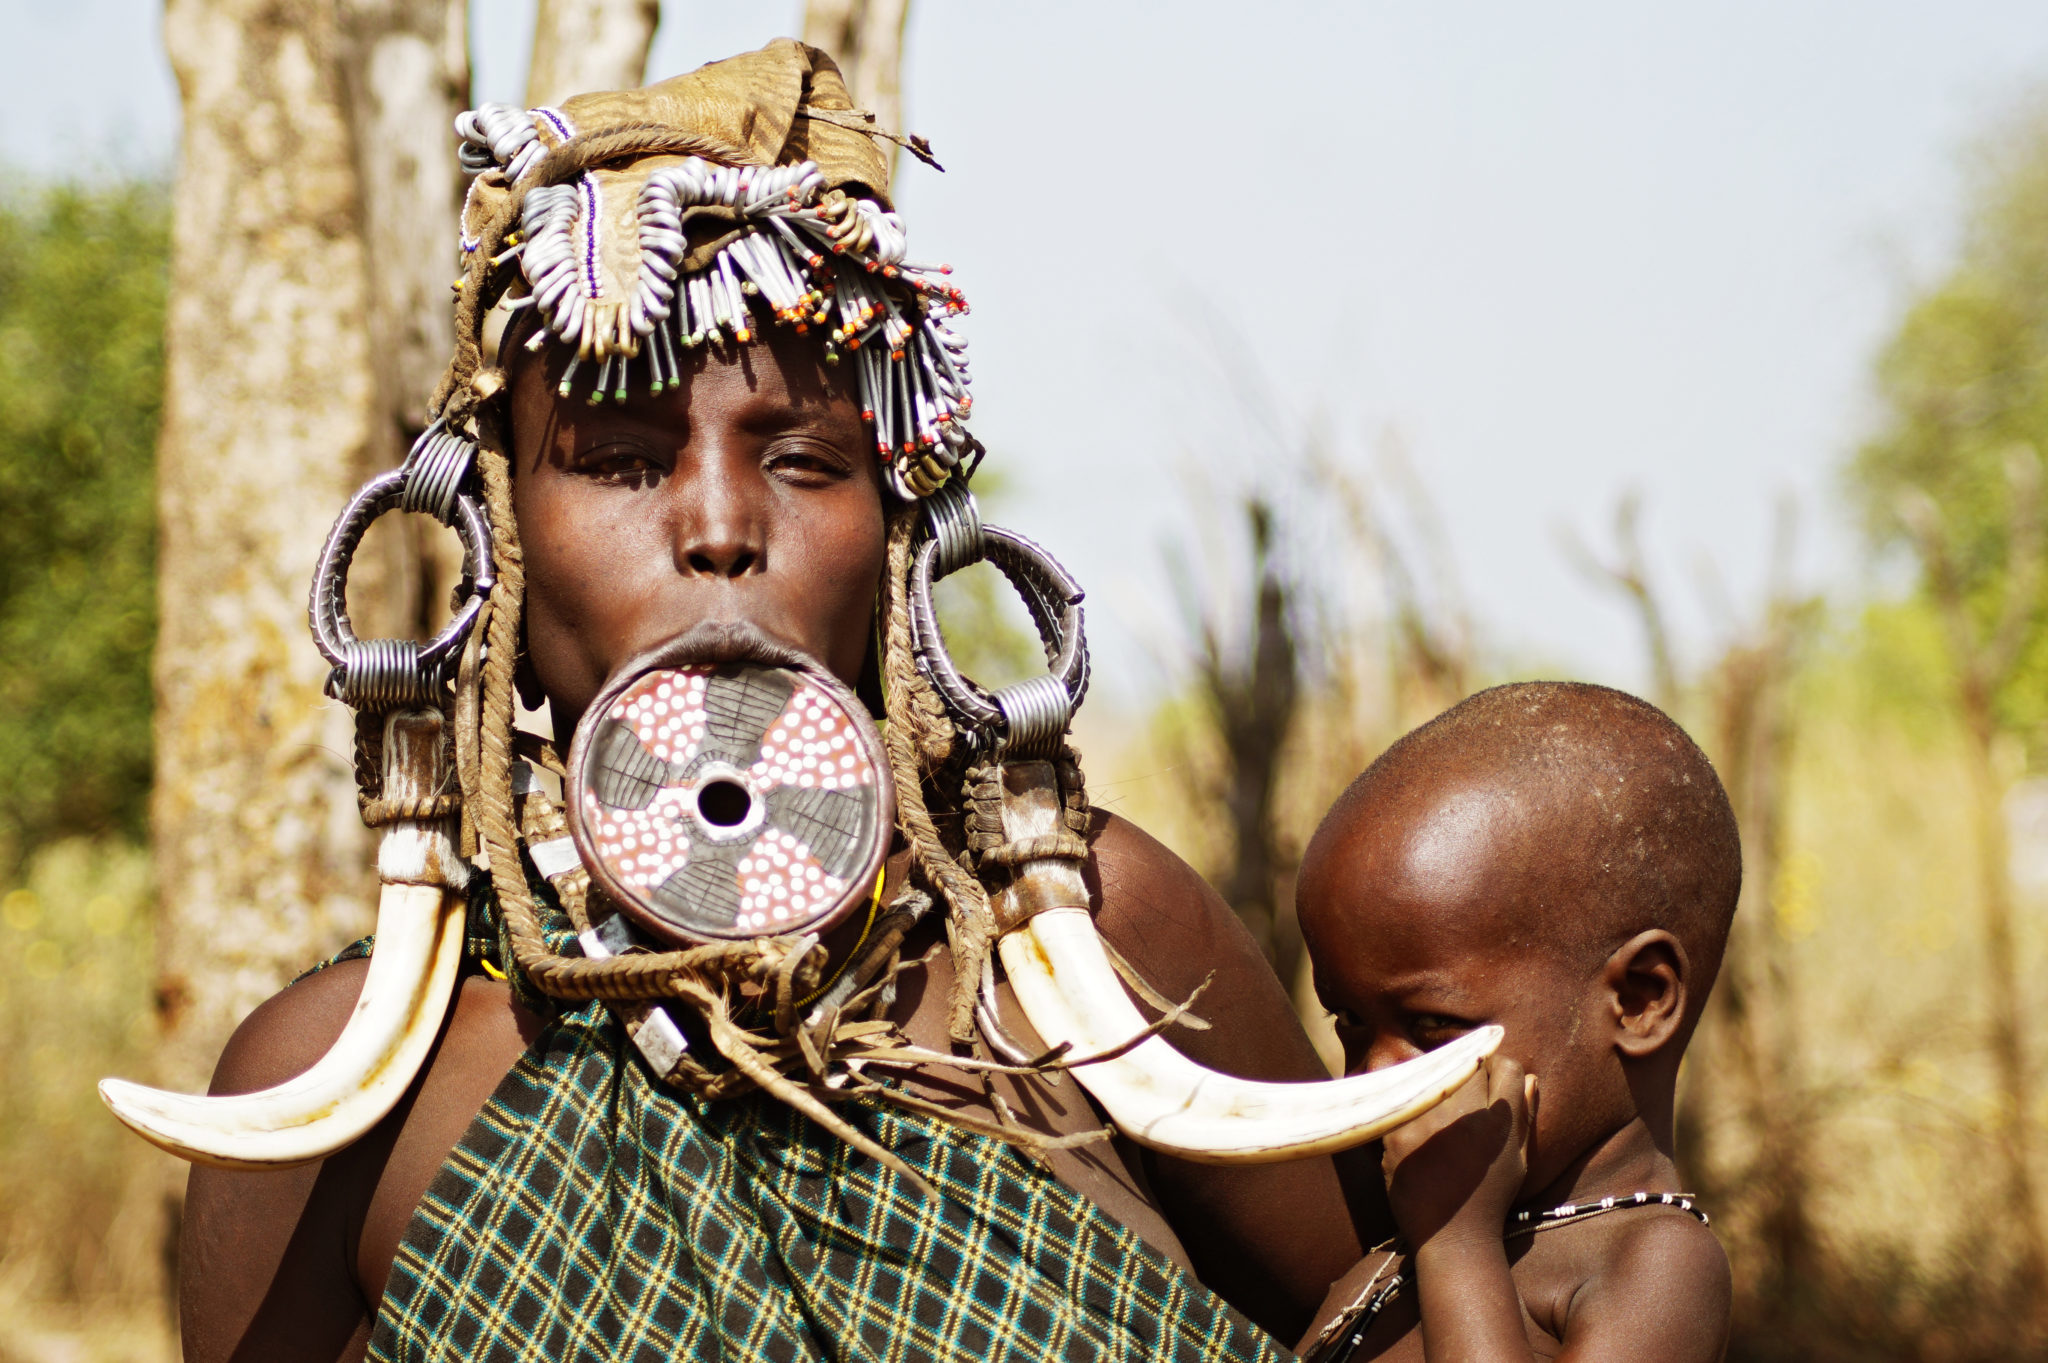 Mursi Tribe – The Larger the Lip Plate, the Bigger the Bride Wealth